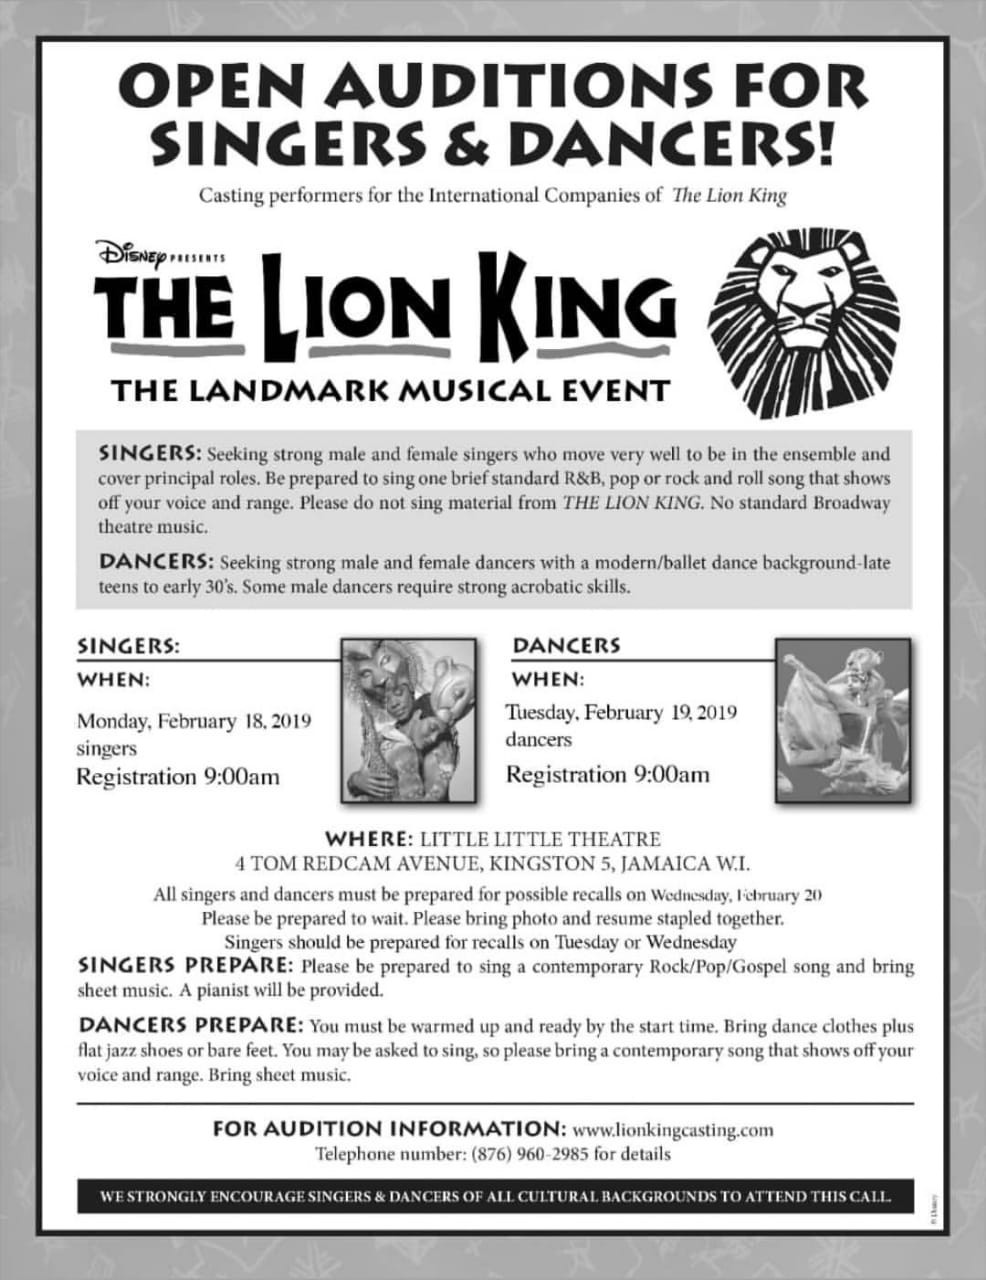 MEOnMusic: I Auditioned for The Lion King Broadway